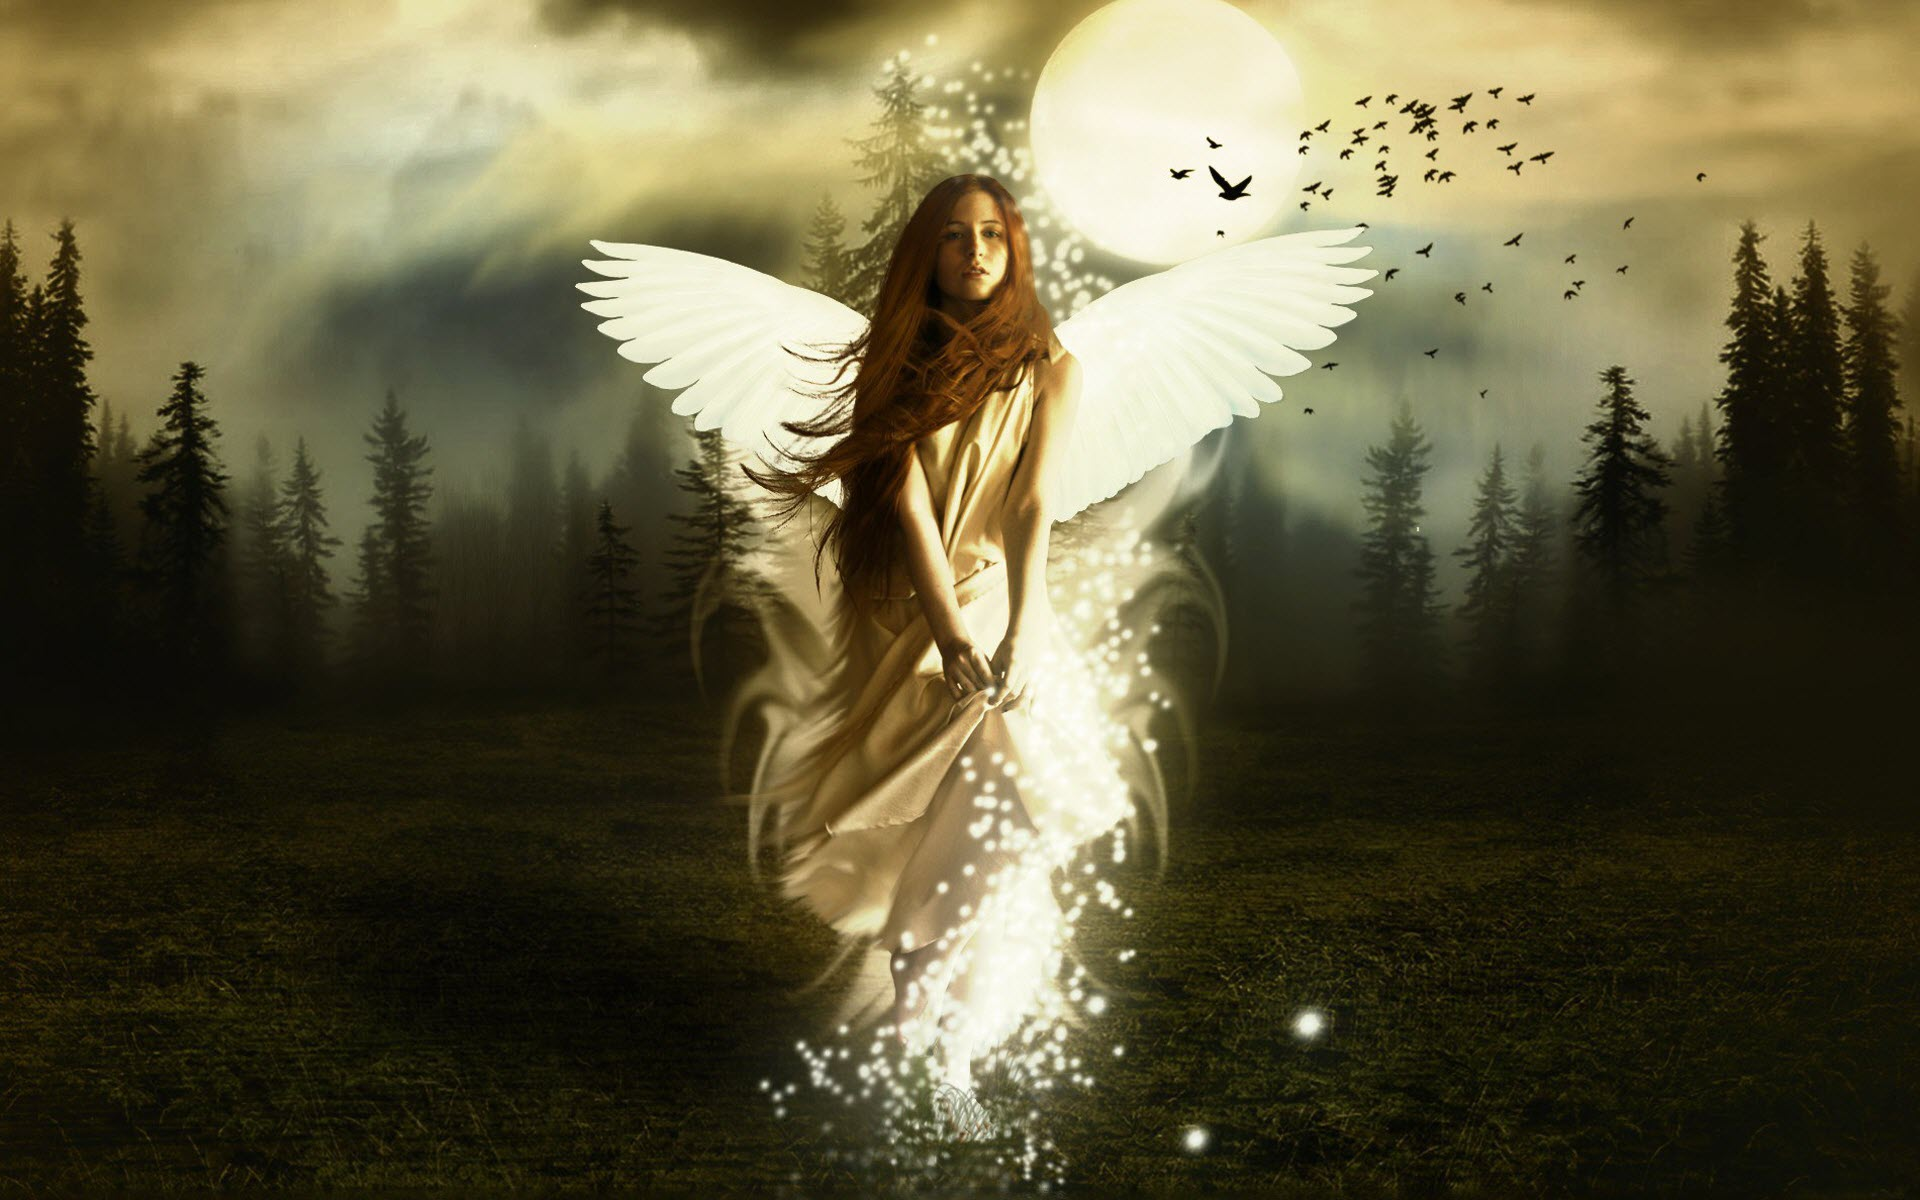 Wallpaper Of A Angel Girl In Forest Wallpaper World 1920x1200